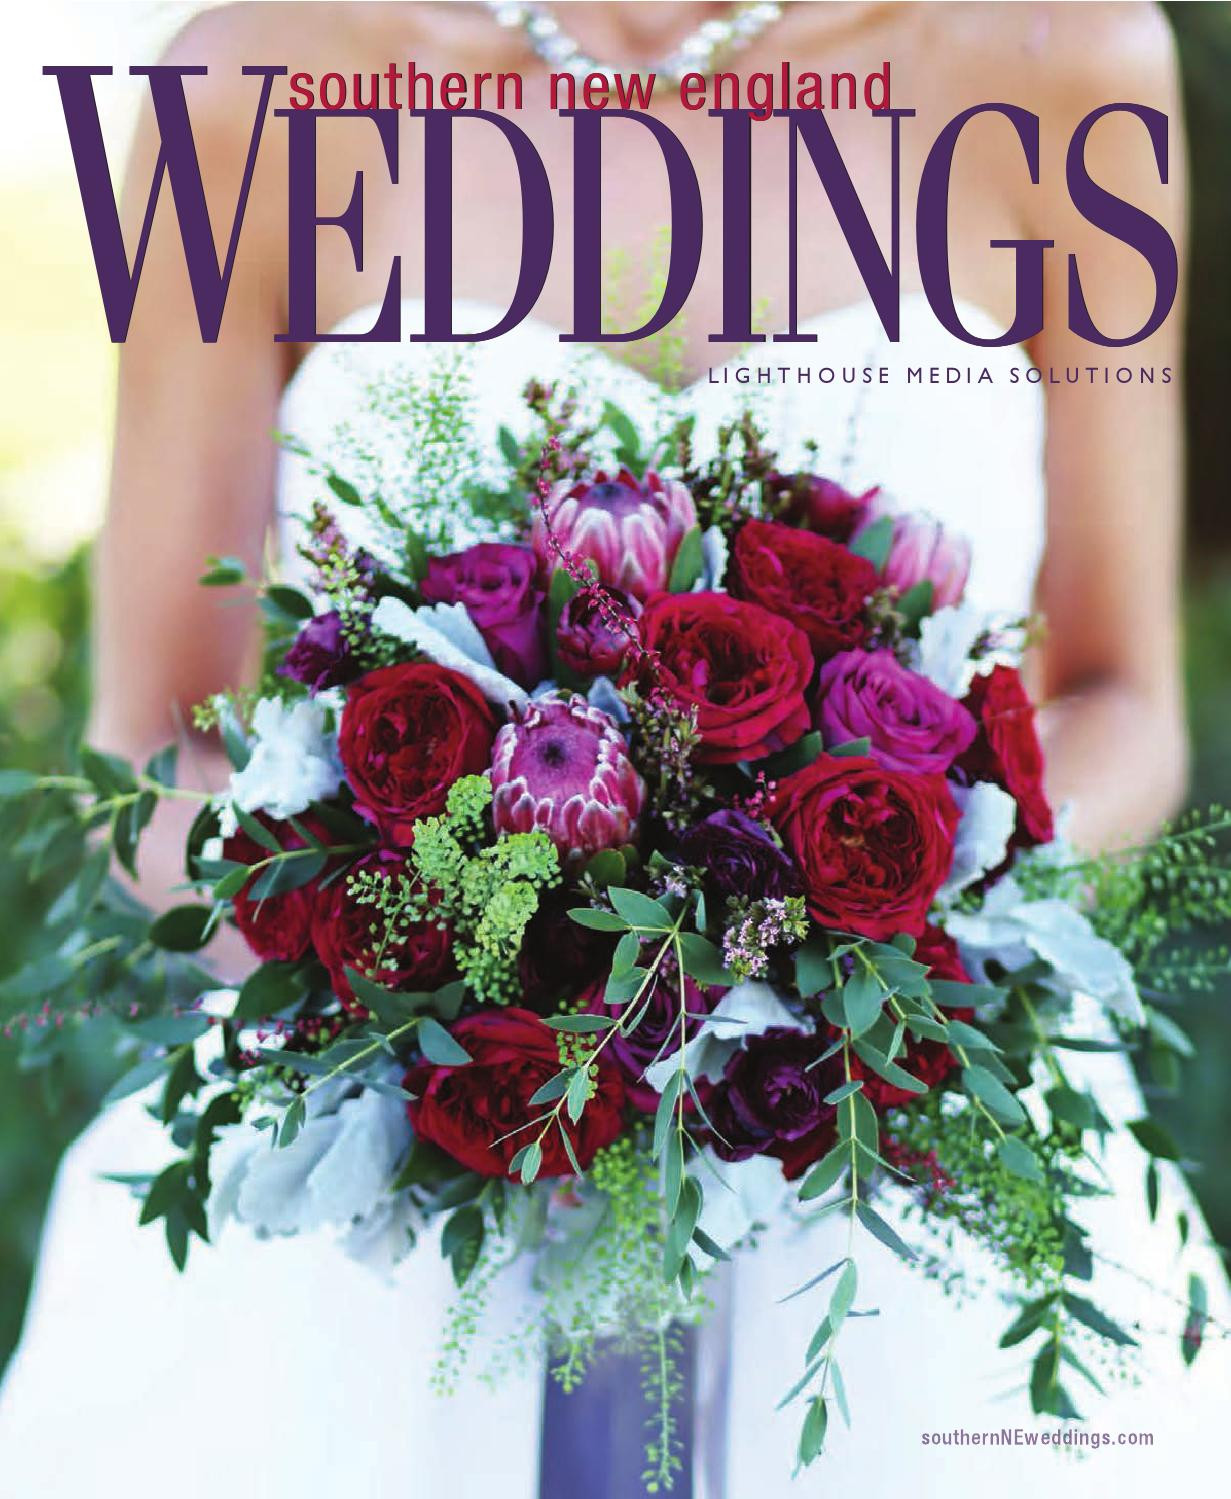 Macys Kate Spade Vase Of southern New England Weddings 2016 by Lighthouse Media solutions issuu with Regard to Page 1